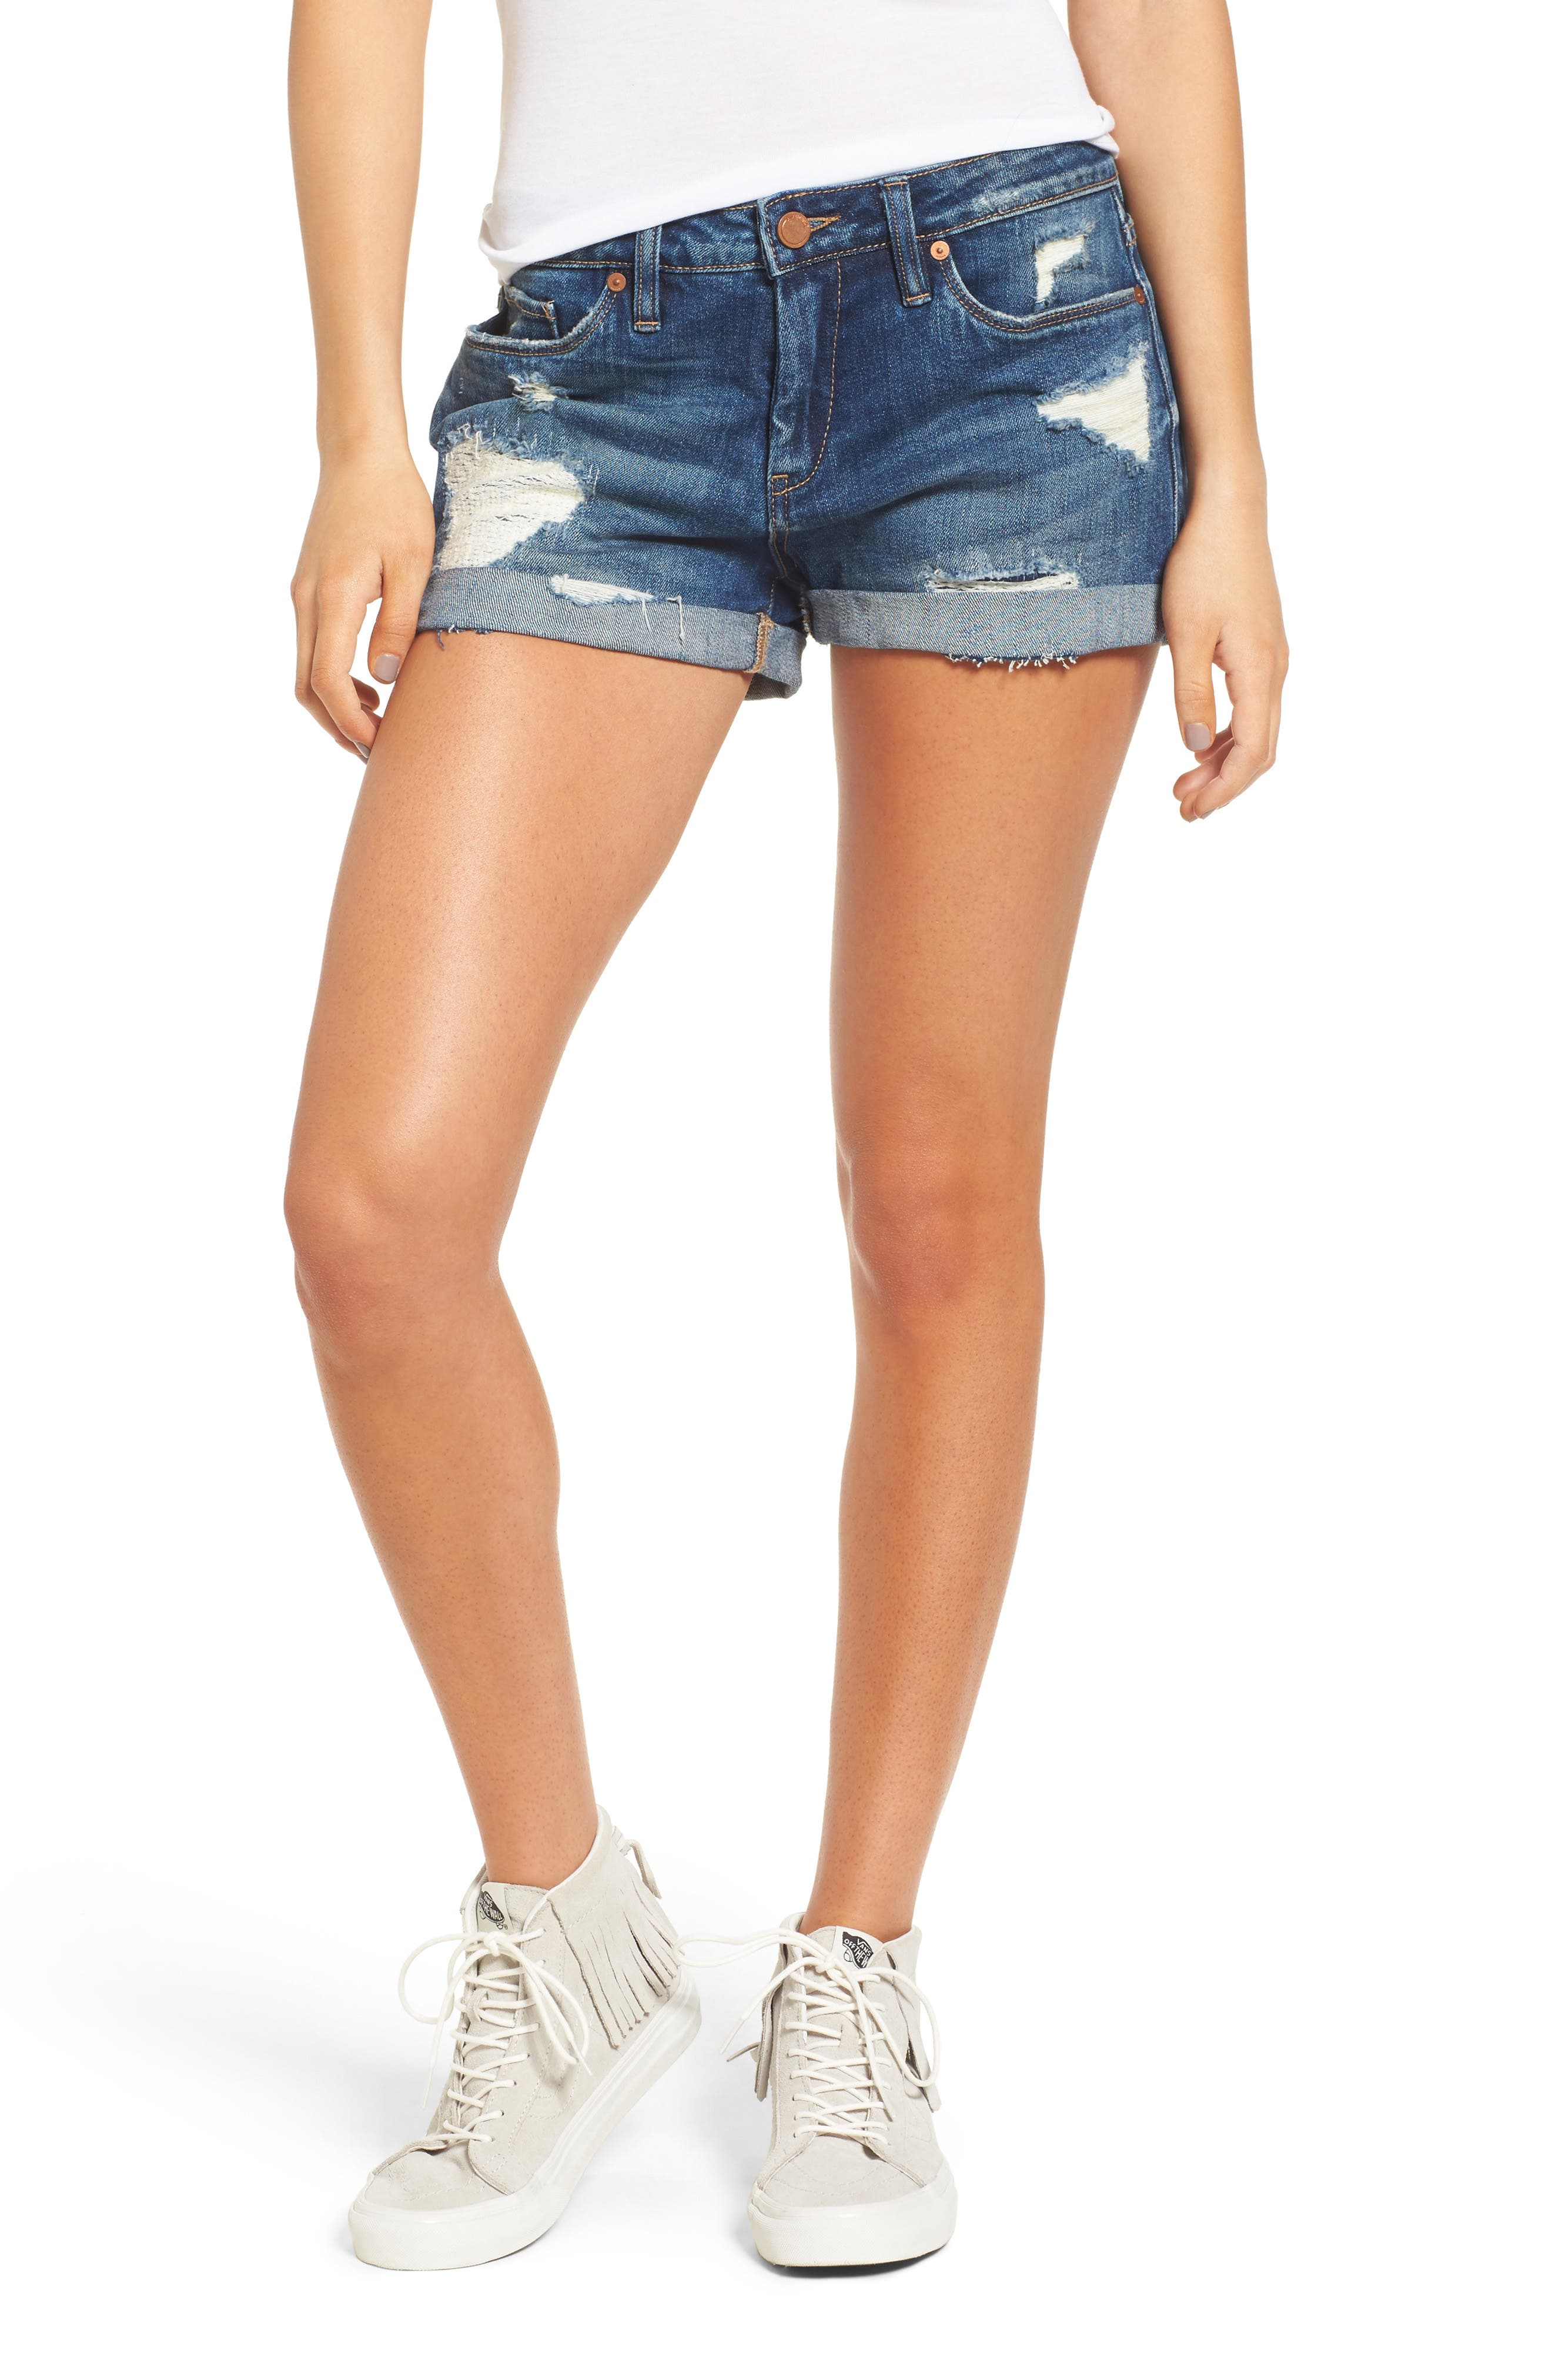 Alternate Image 1 Selected - BLANKNYC Boyfriend Denim Shorts (Dress Down Party)